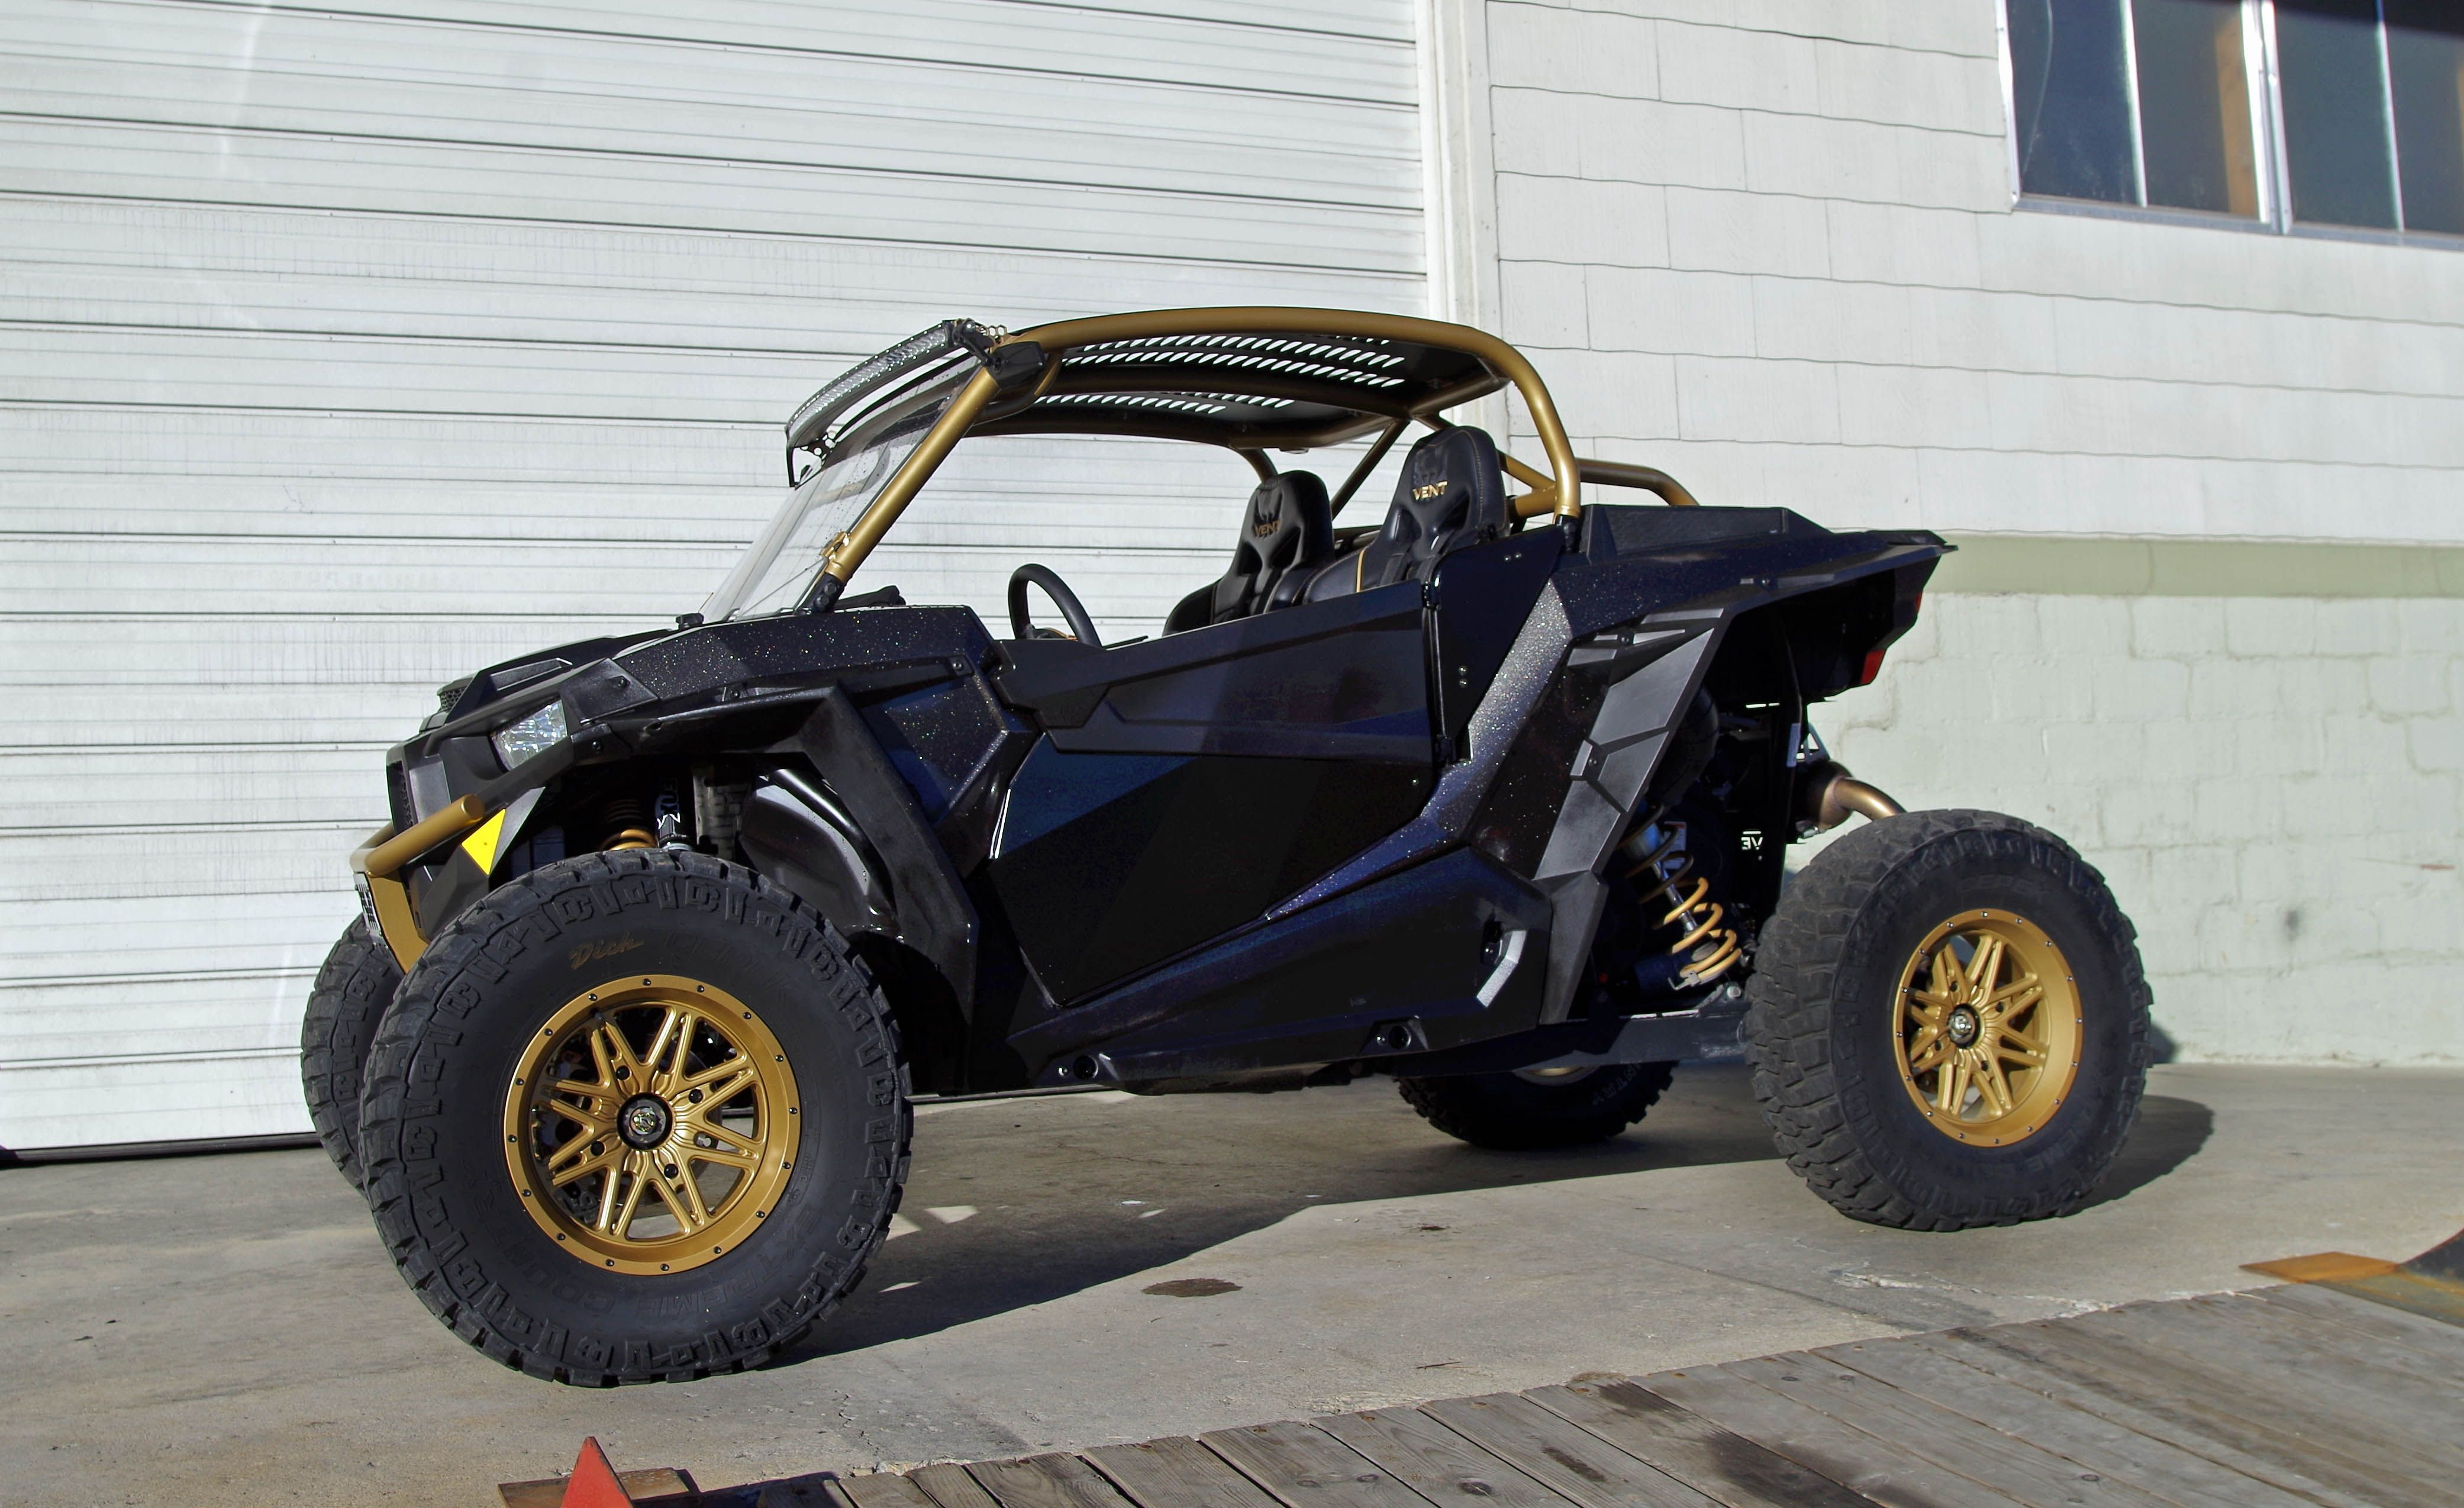 2016 polaris rzr 1000 turbo built by vent racing it has a. Black Bedroom Furniture Sets. Home Design Ideas